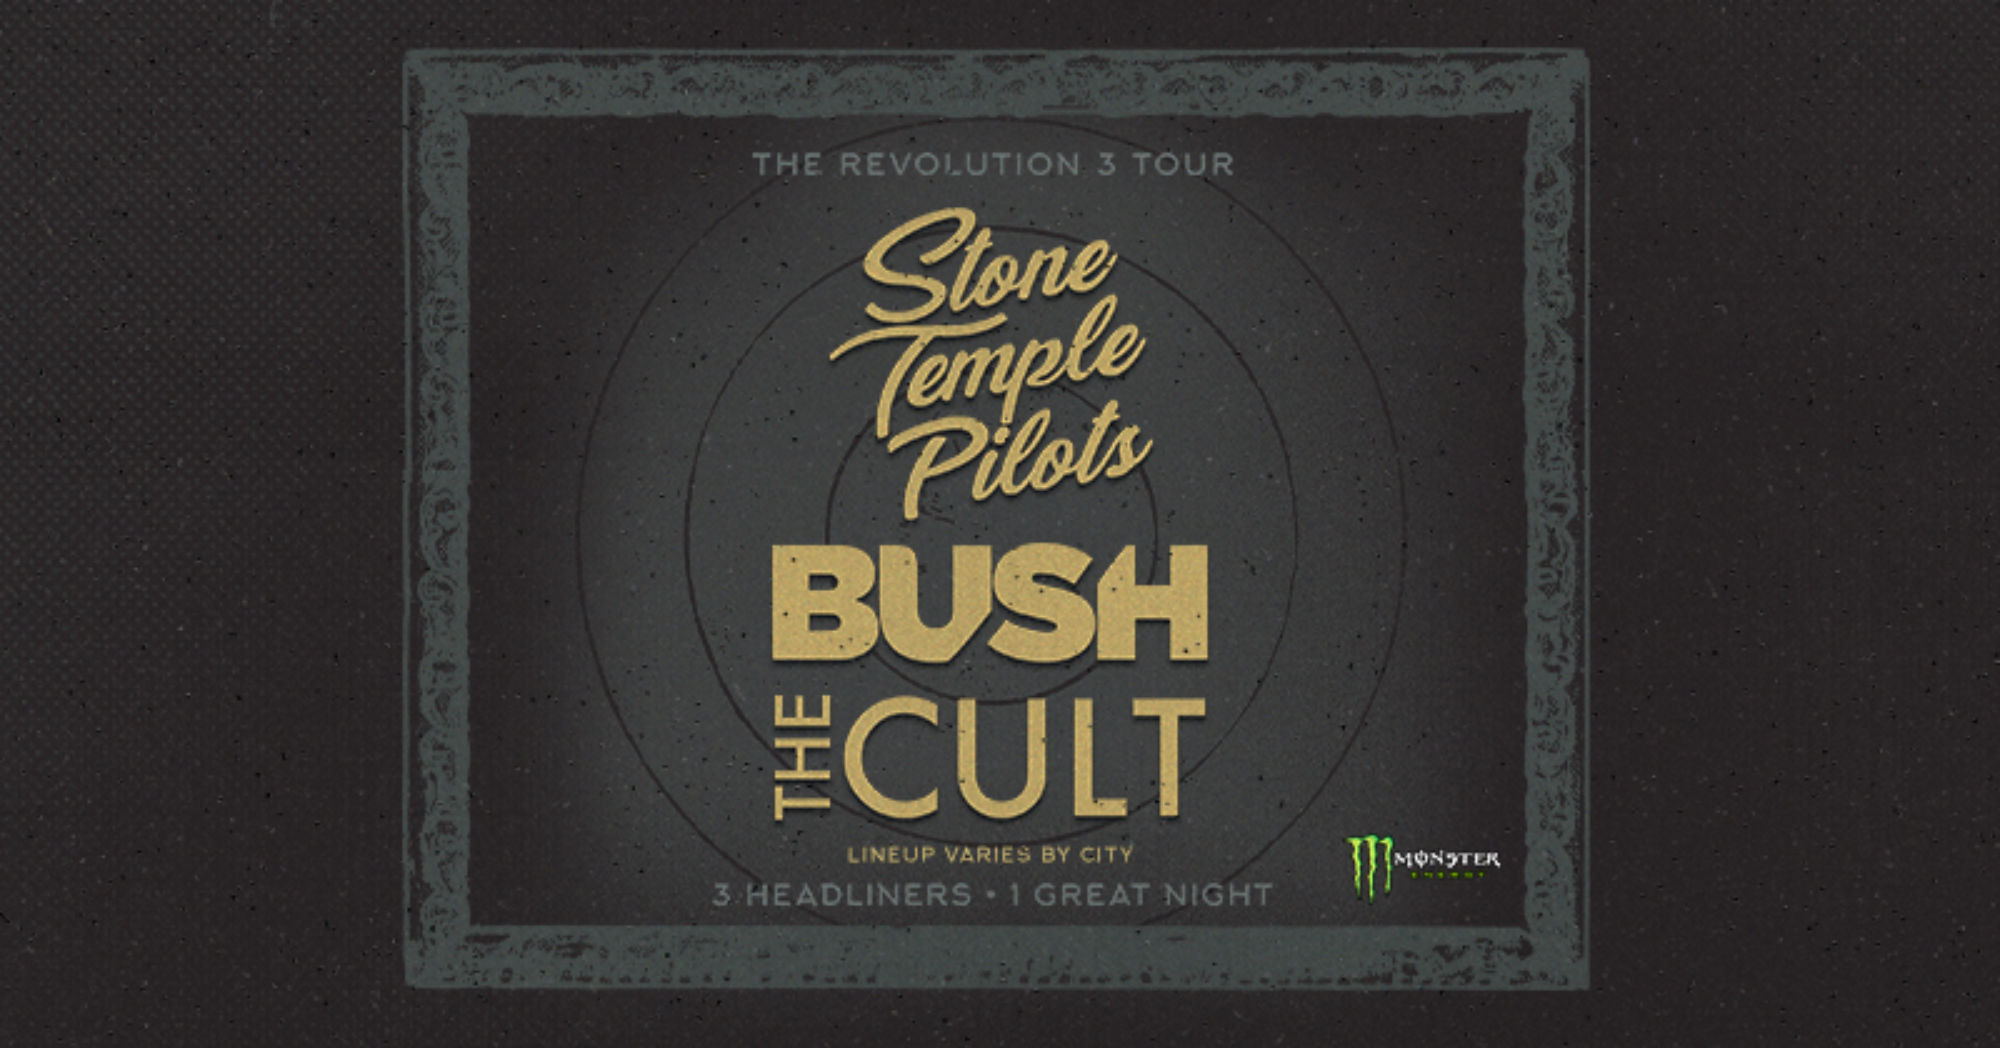 Stone Temple Pilots Bush The Cult Twitter Website Card 800X419 Static